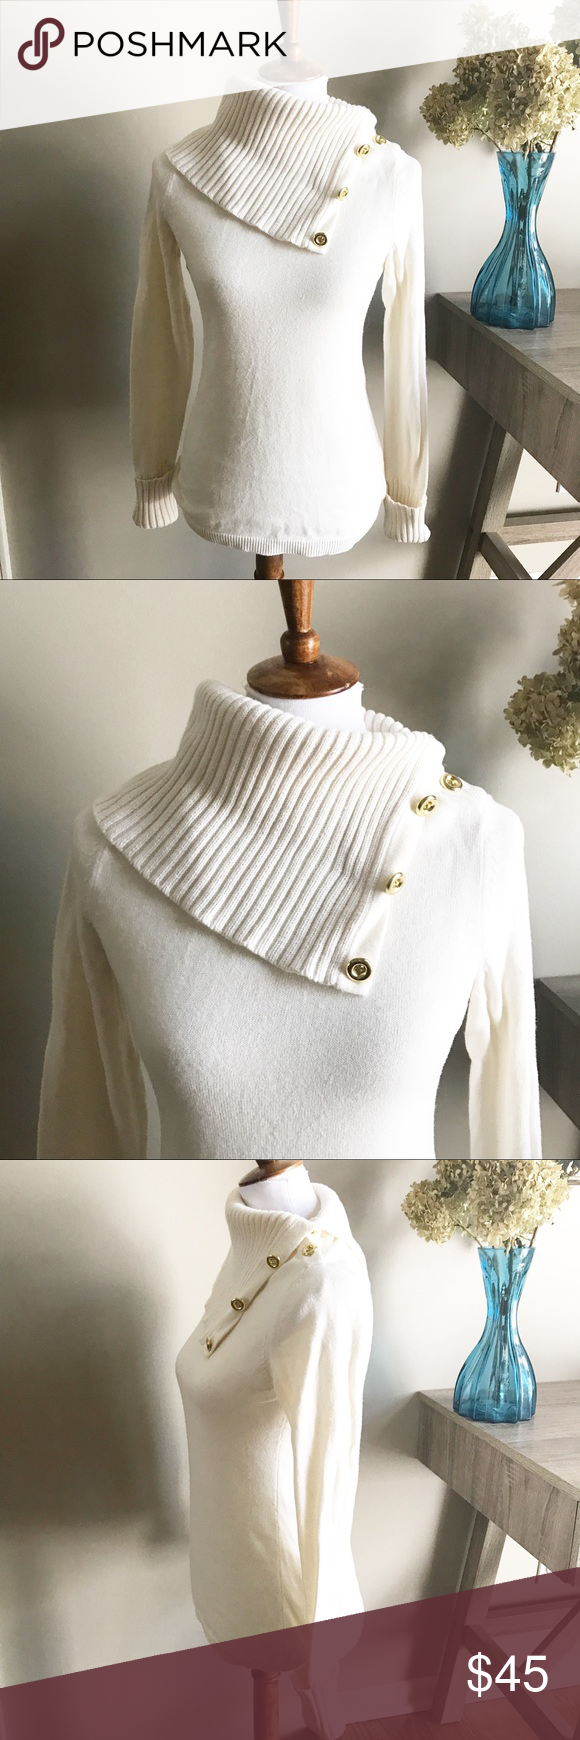 Banana Republic Button Cowl Neck Sweater size S | Cowl neck ...